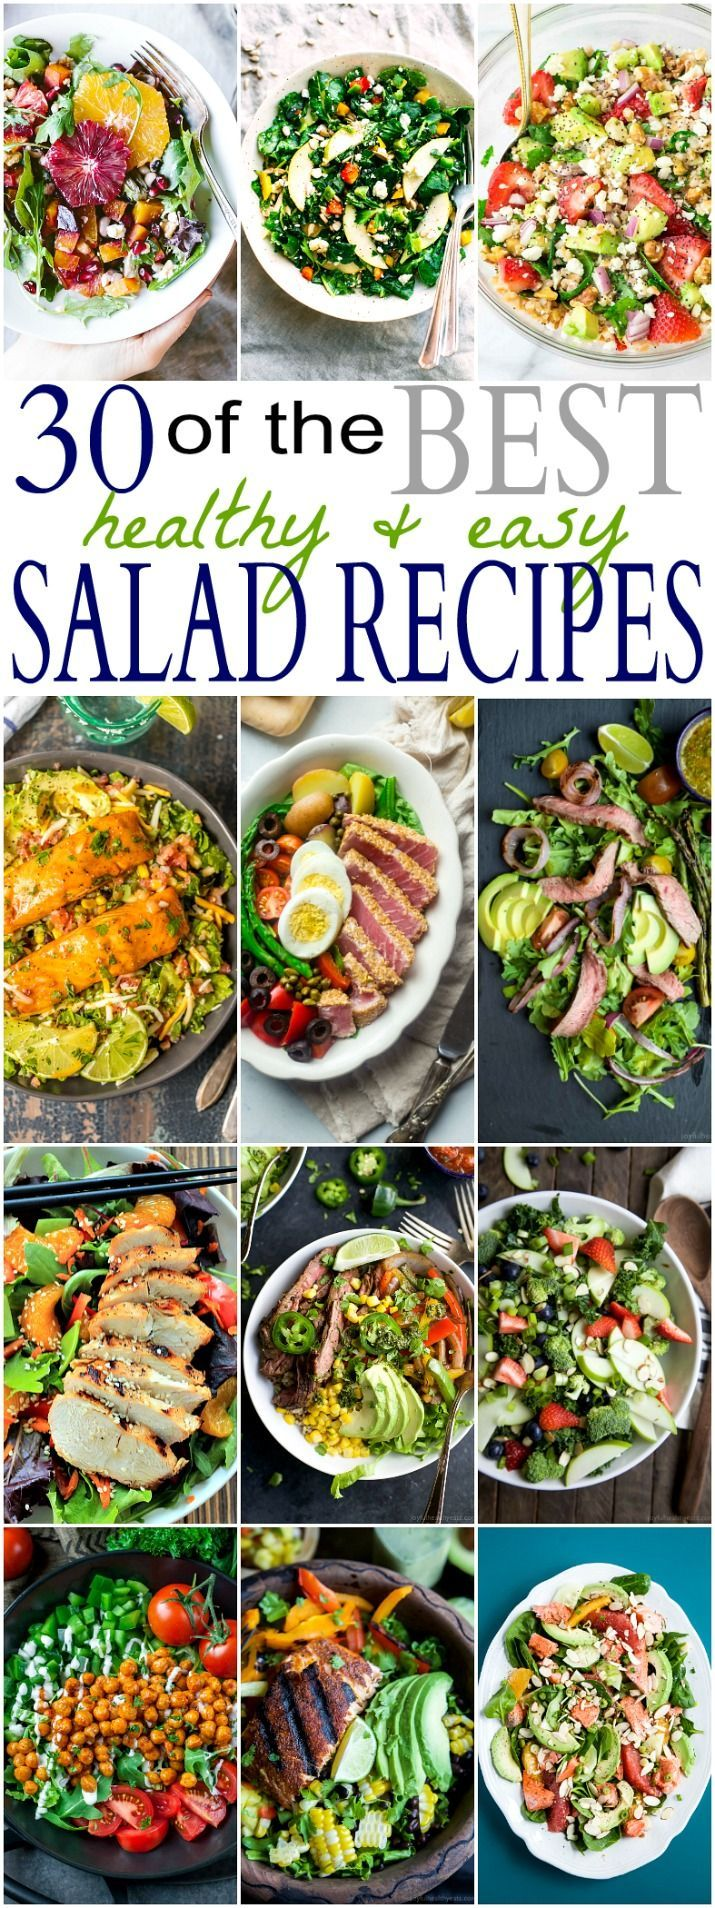 30 of the BEST Healthy & Easy Salad Recipes